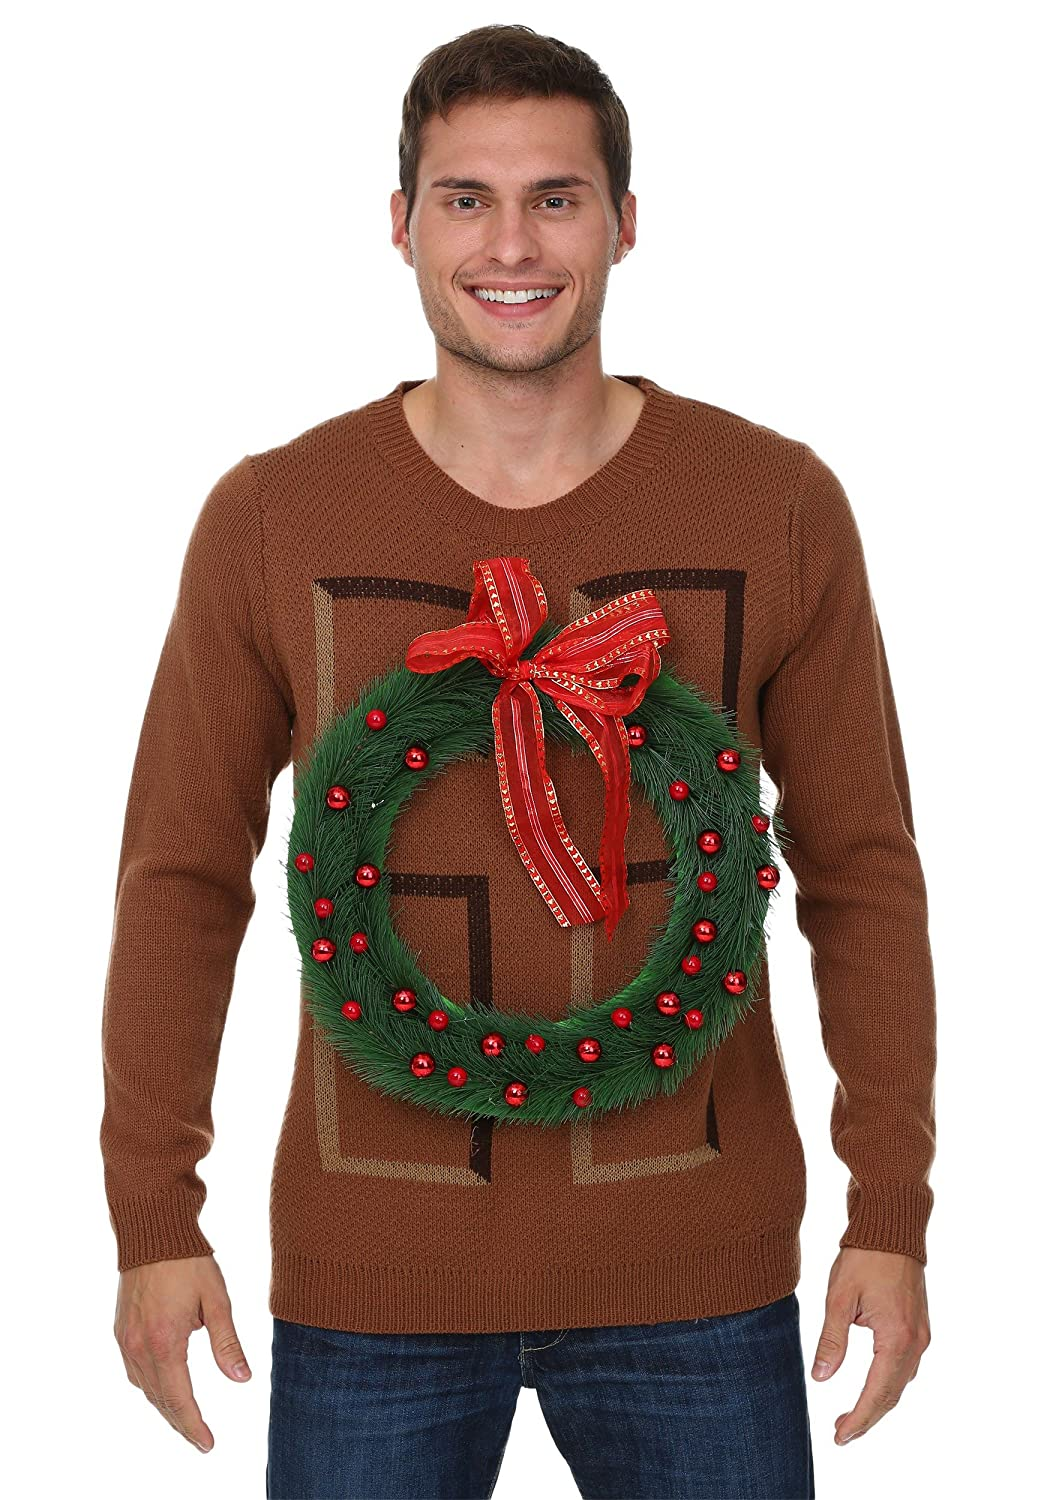 Fun Costumes Christmas Wreath Door Ugly Christmas Sweater Small